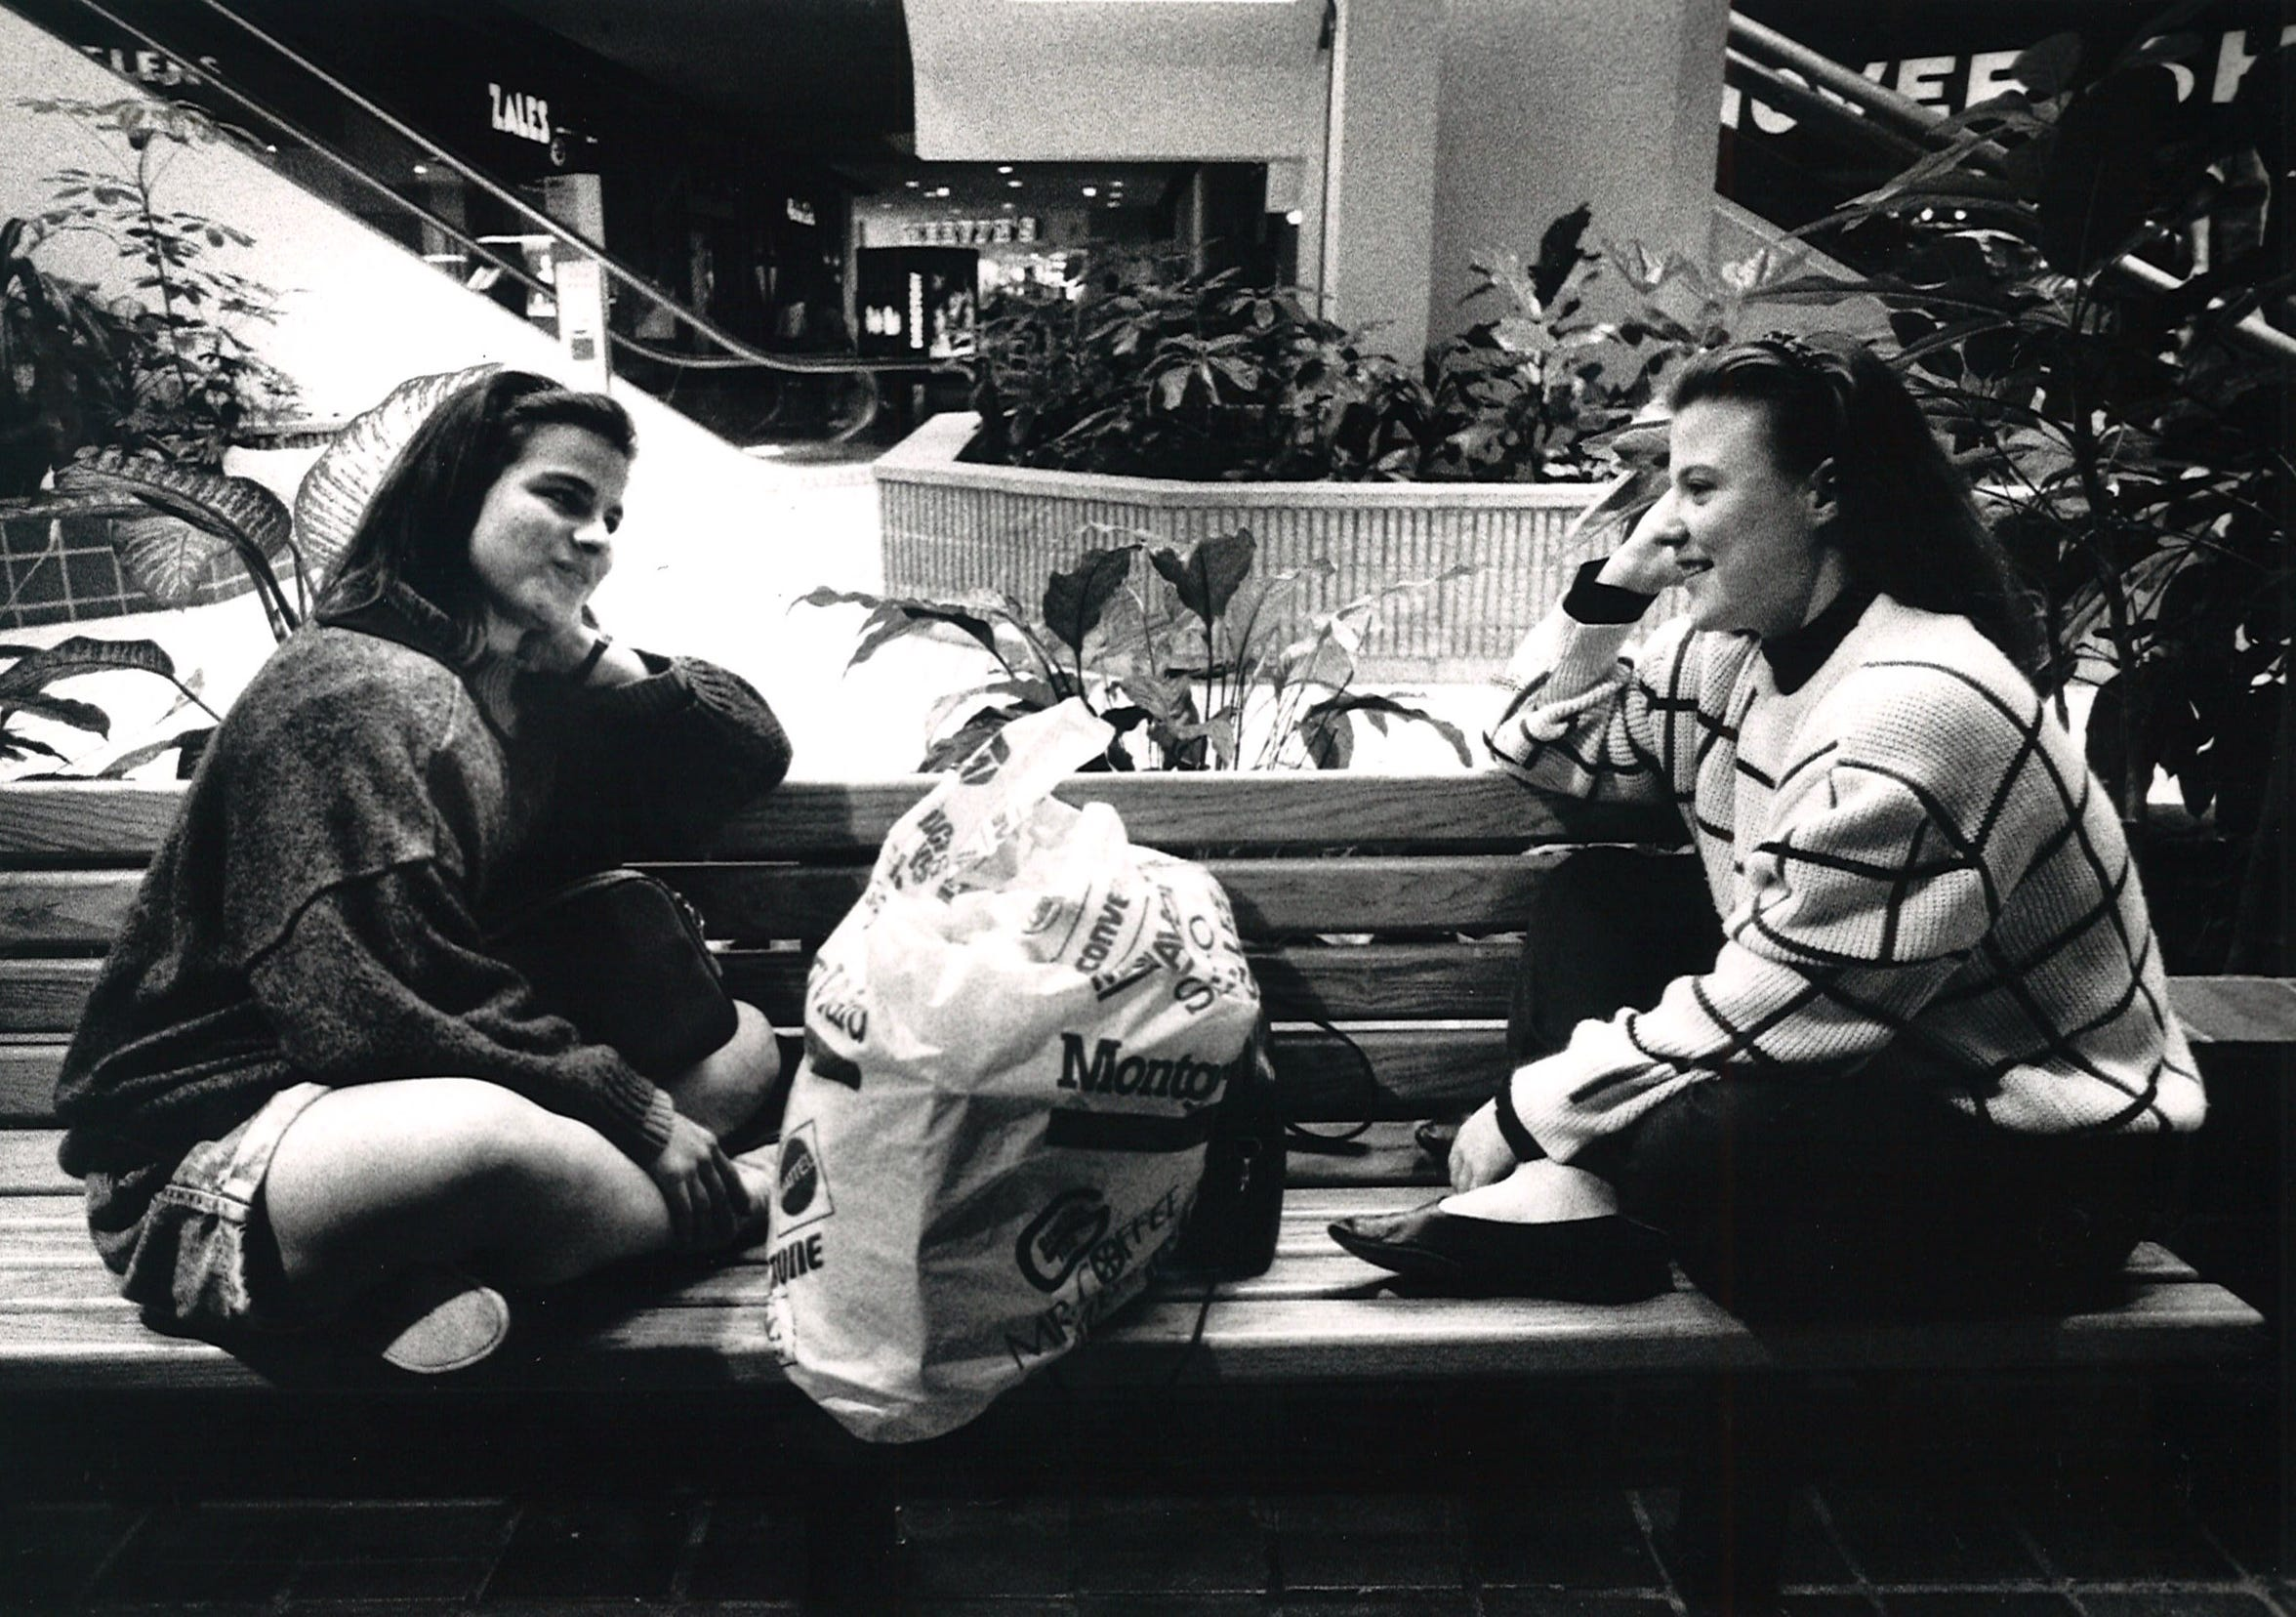 Rosario Gonzalez Garcia (left) and Eugenia Gonzalez Garcia of Monterrey, take a break from some heavy shopping at Sunrise Mall on March 21, 1989. Many Mexican nationals were shopping at the mall before the Easter holidays.